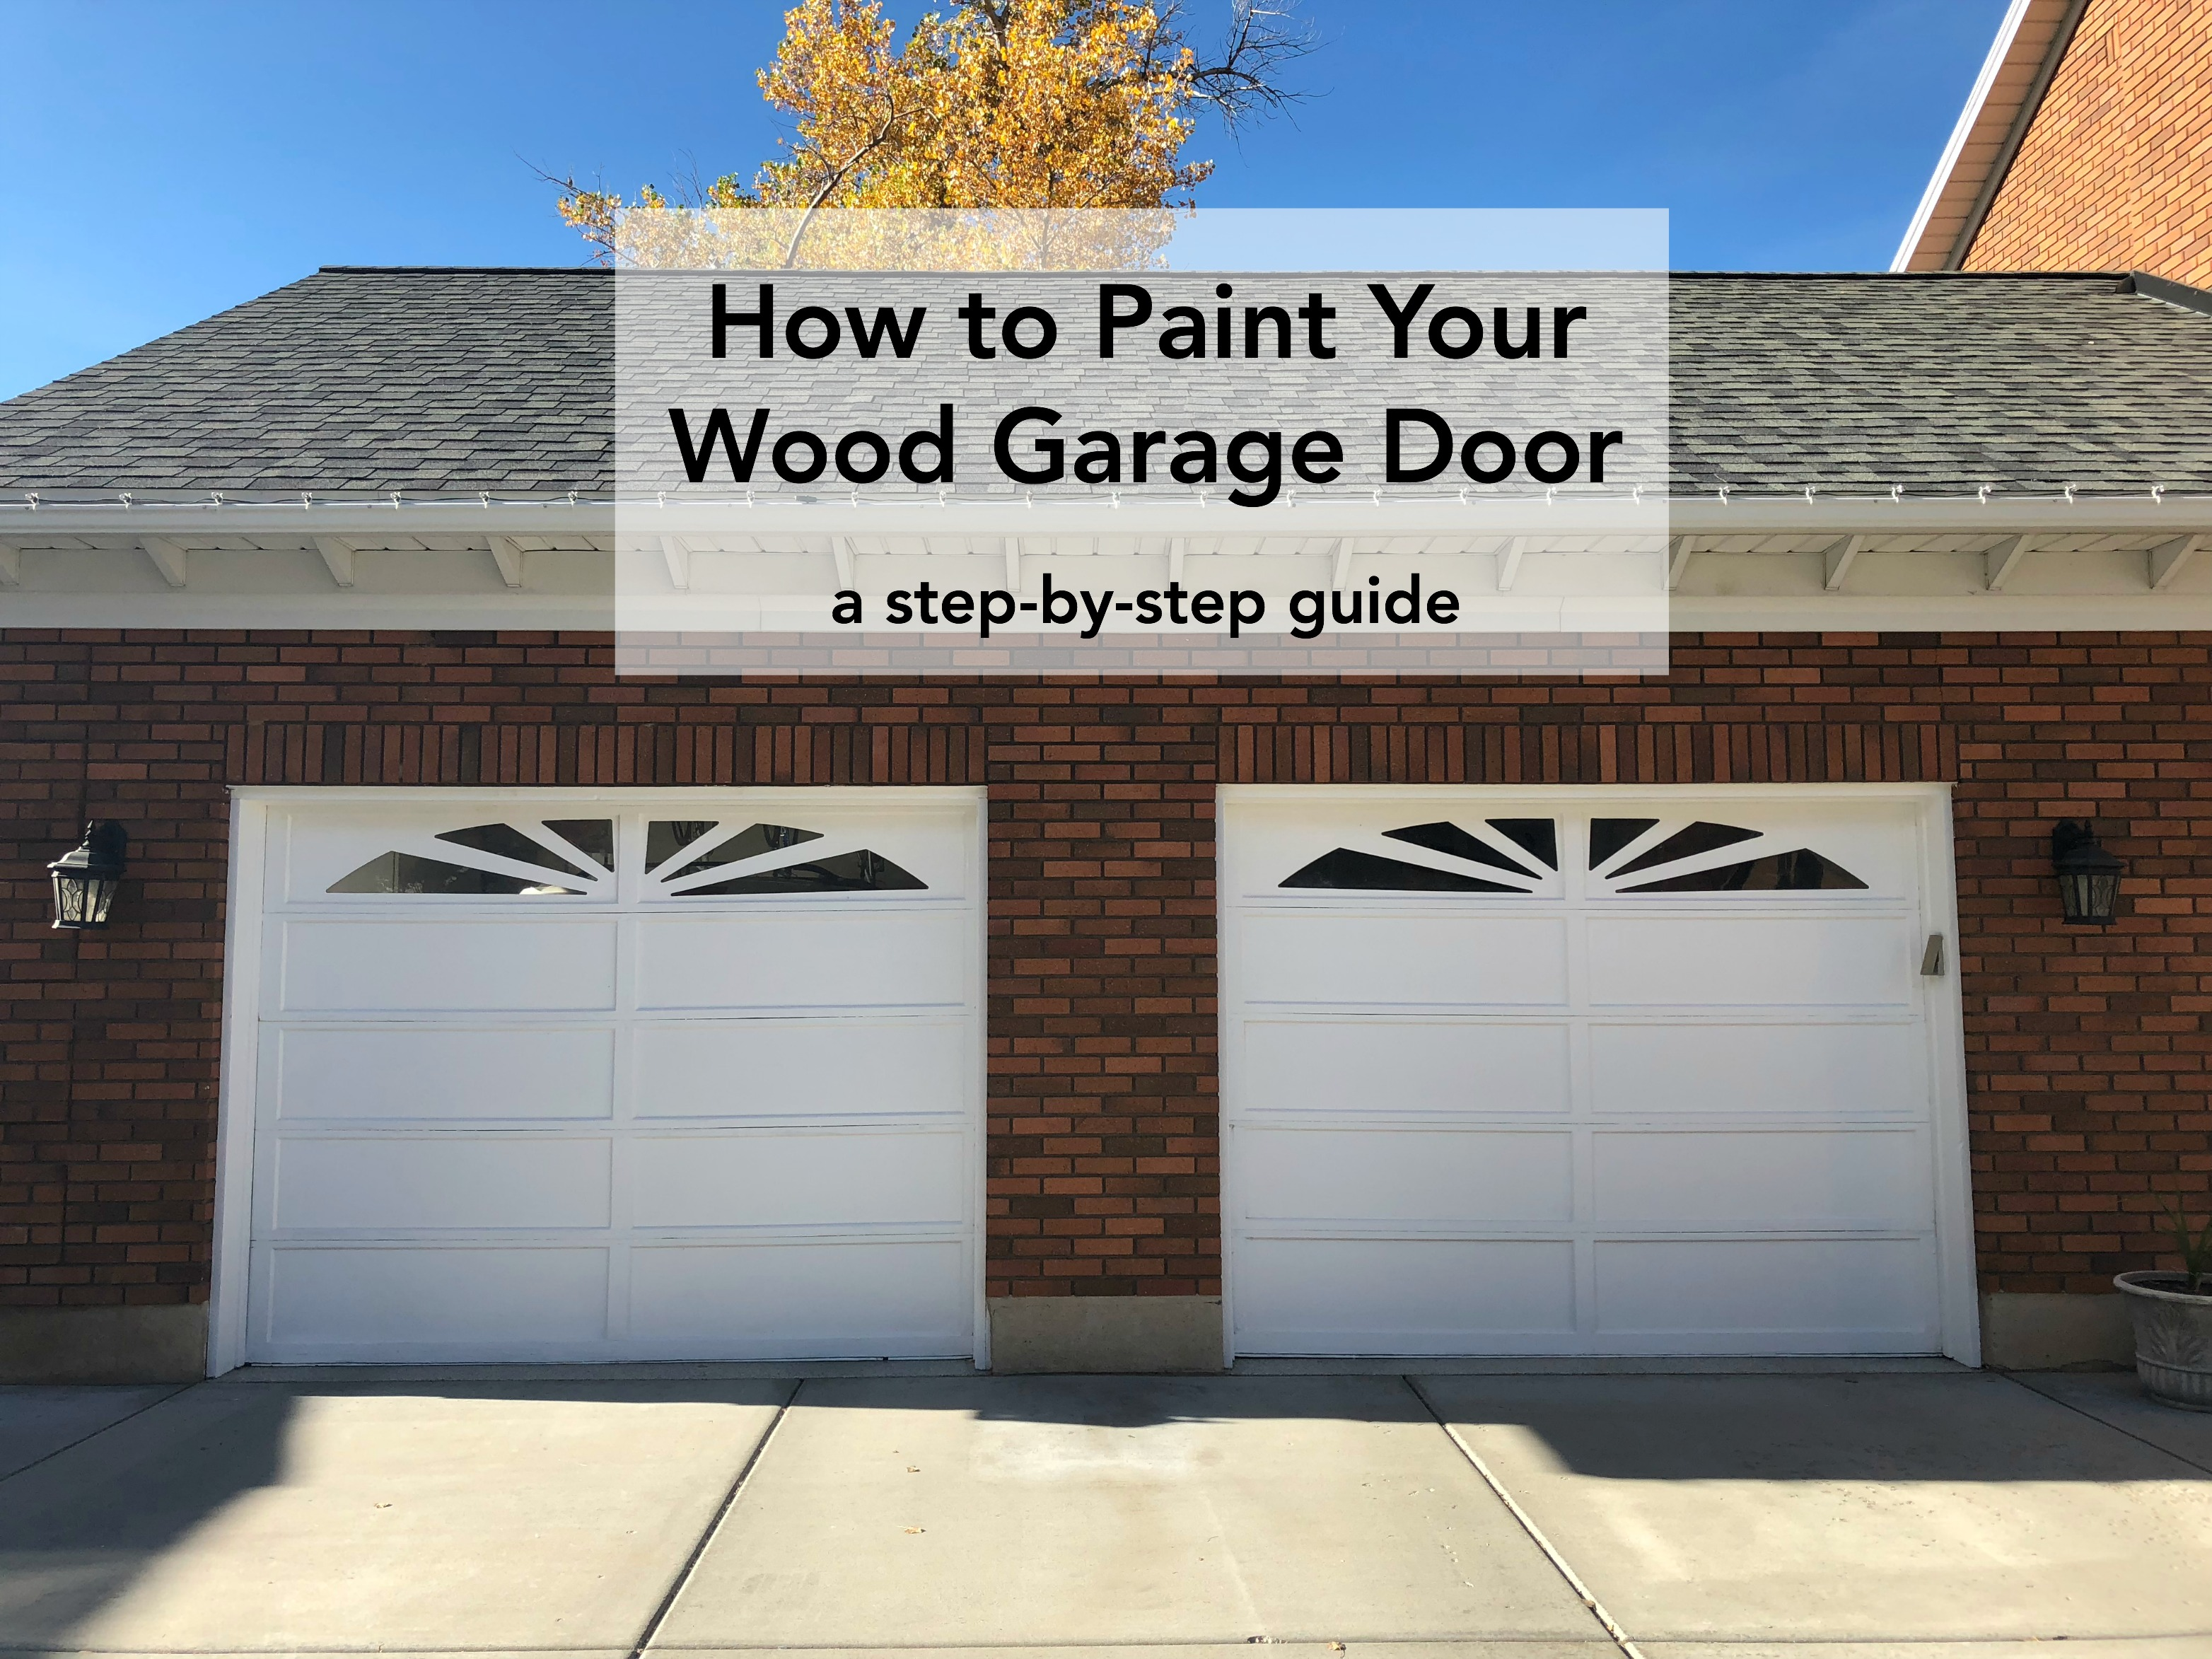 How To Paint Your Wood Garage Door With Purdy Tools